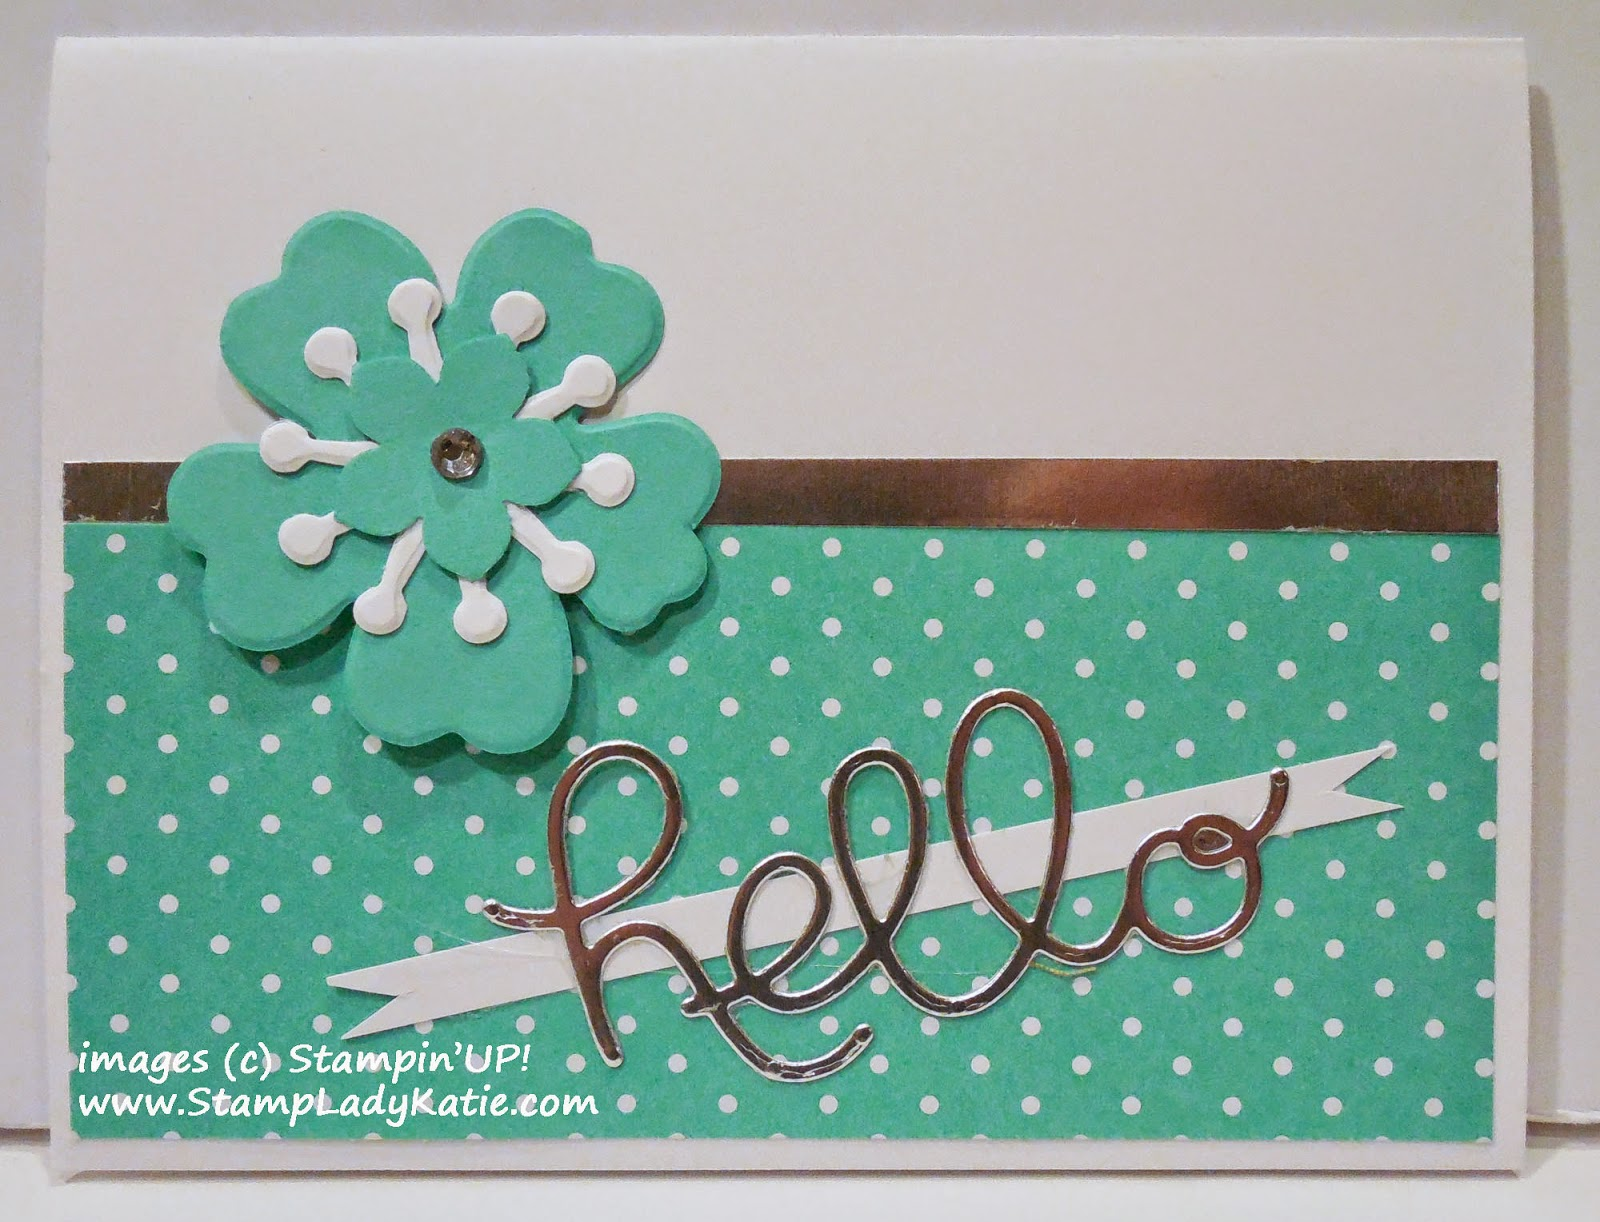 Card made with Stampin'UP!'s Bouquet BigzL Die and Hello You Thinlet Dies